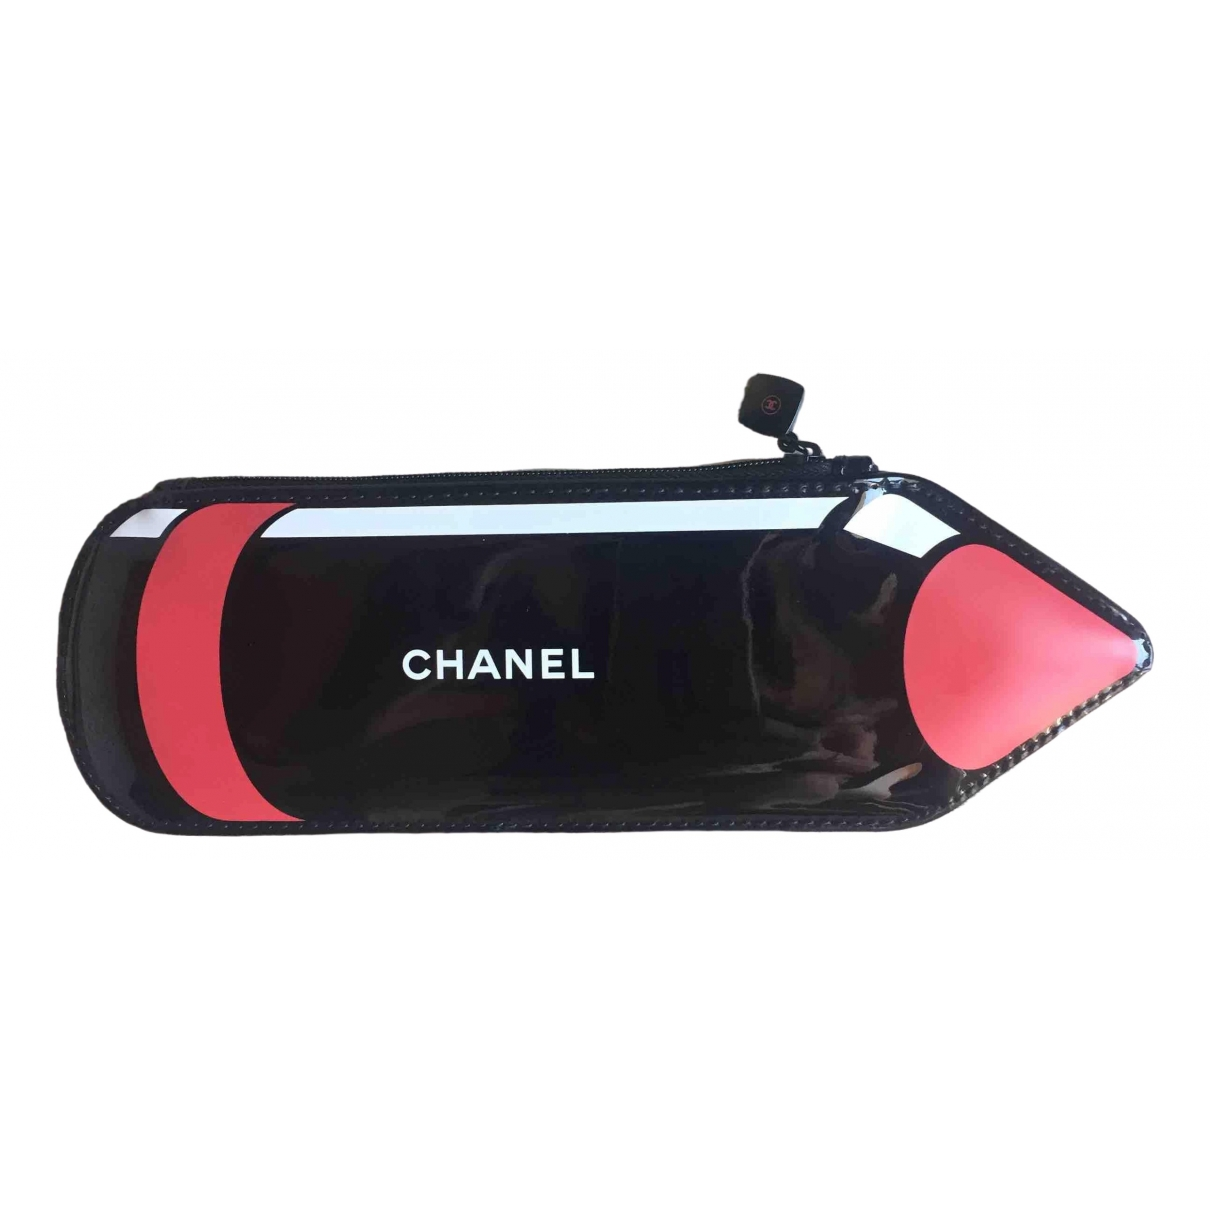 Chanel \N Black Patent leather Travel bag for Women \N